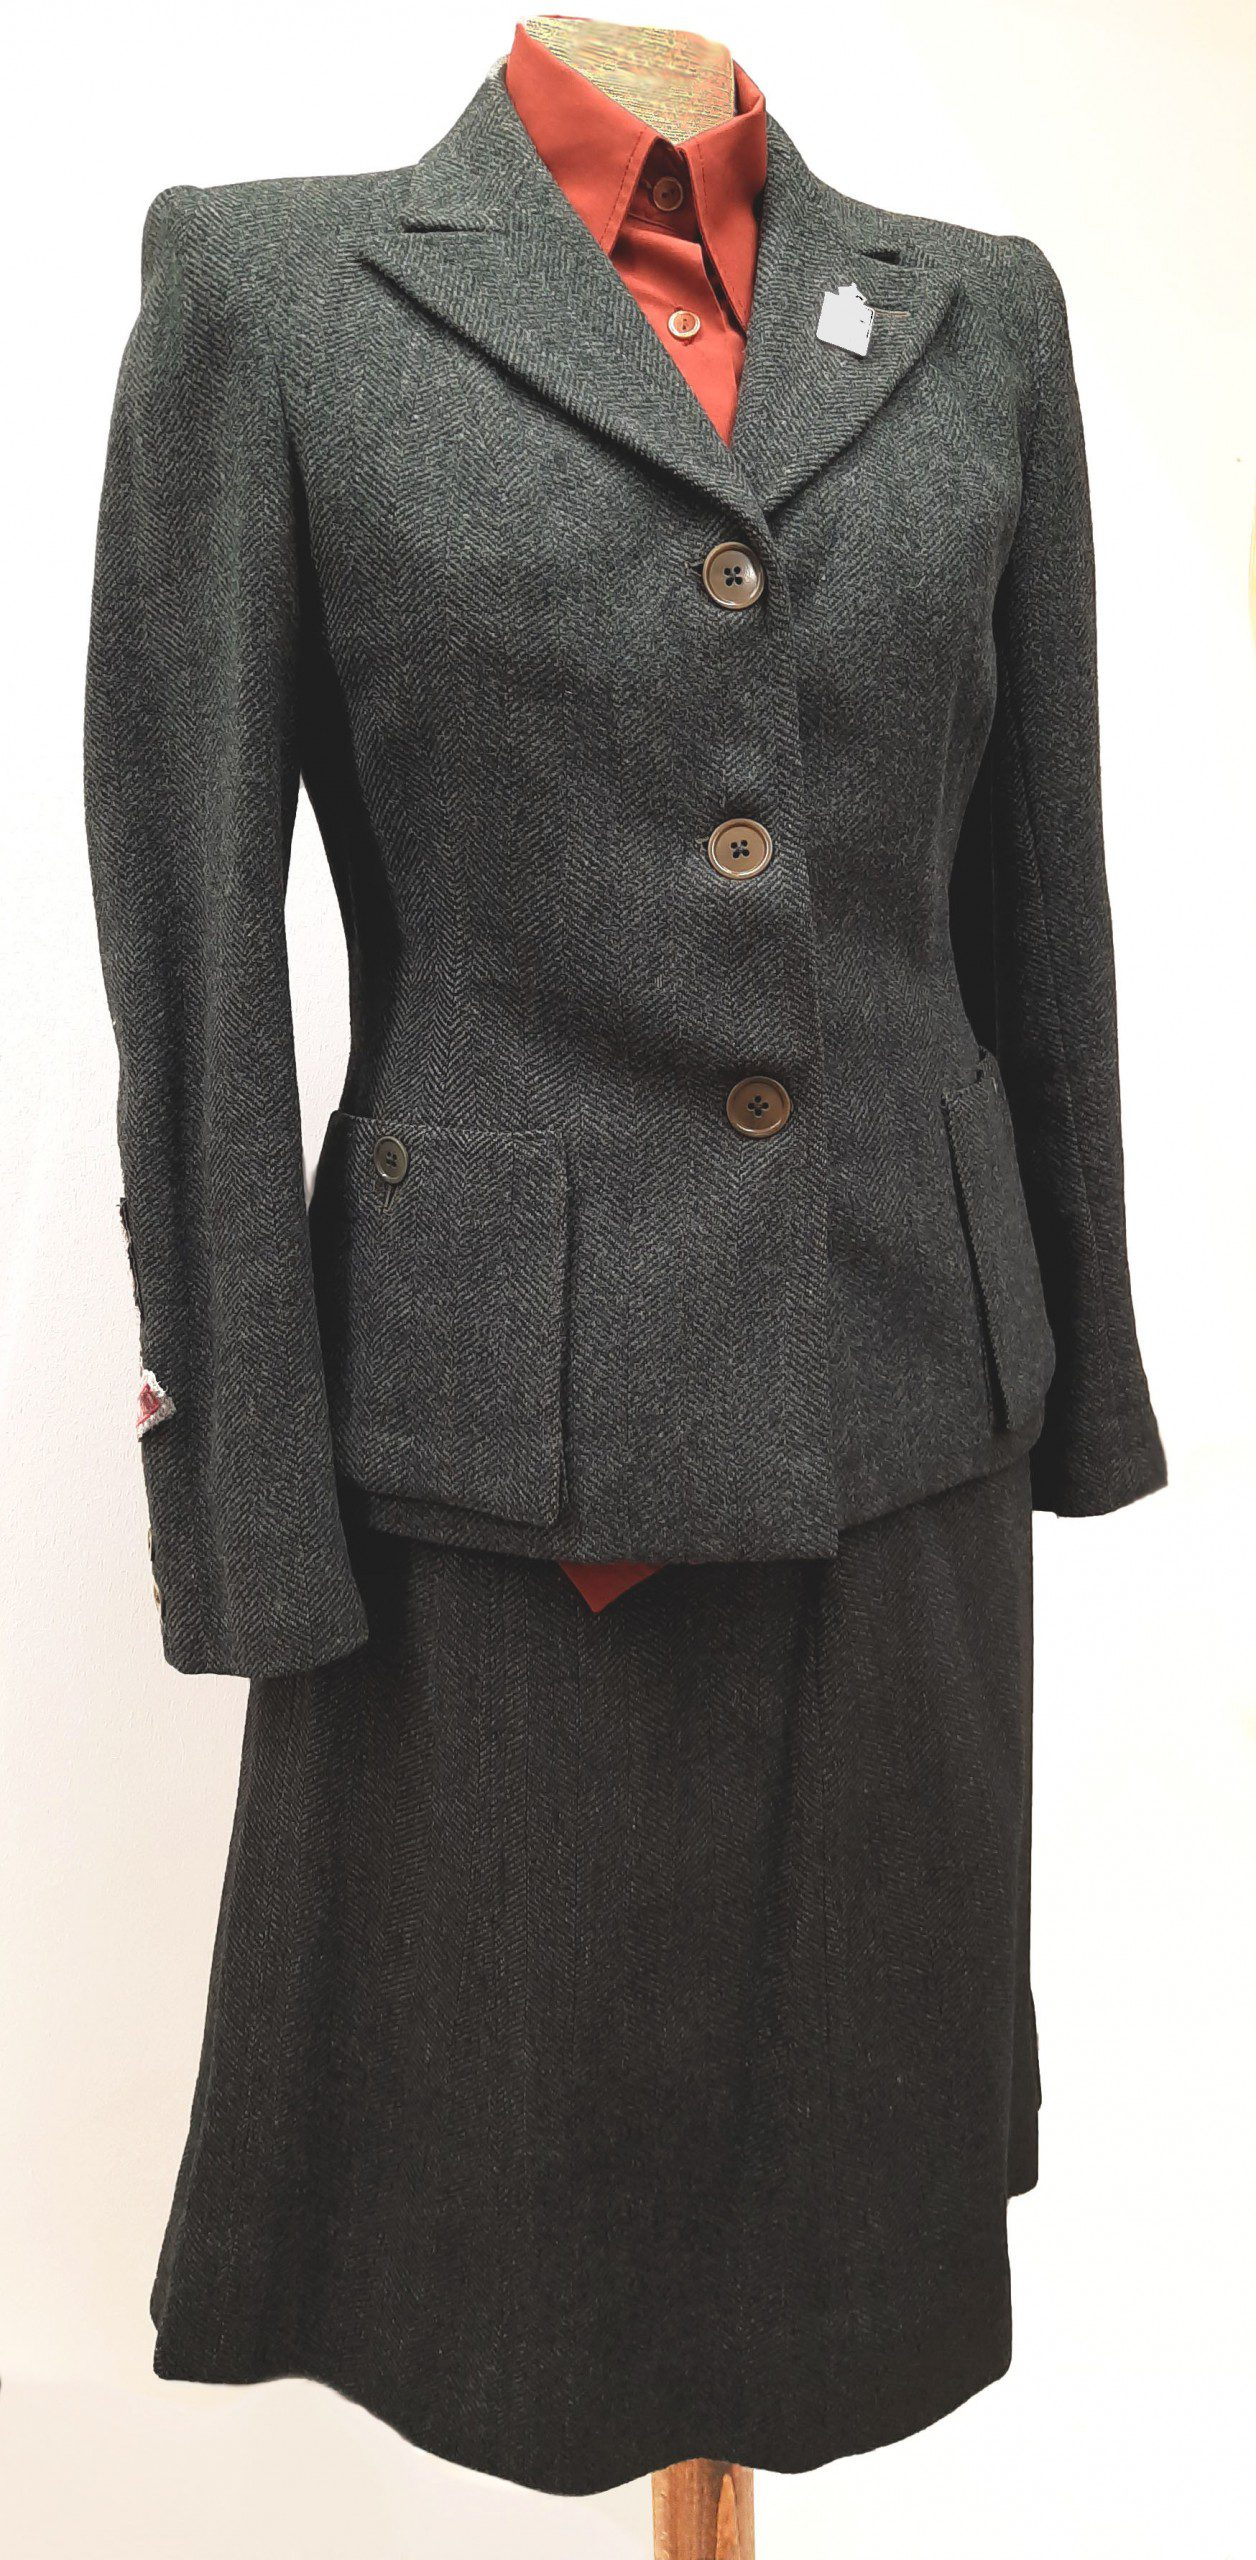 W.V.S. Uniform, Mrs McKinney, Lisburn